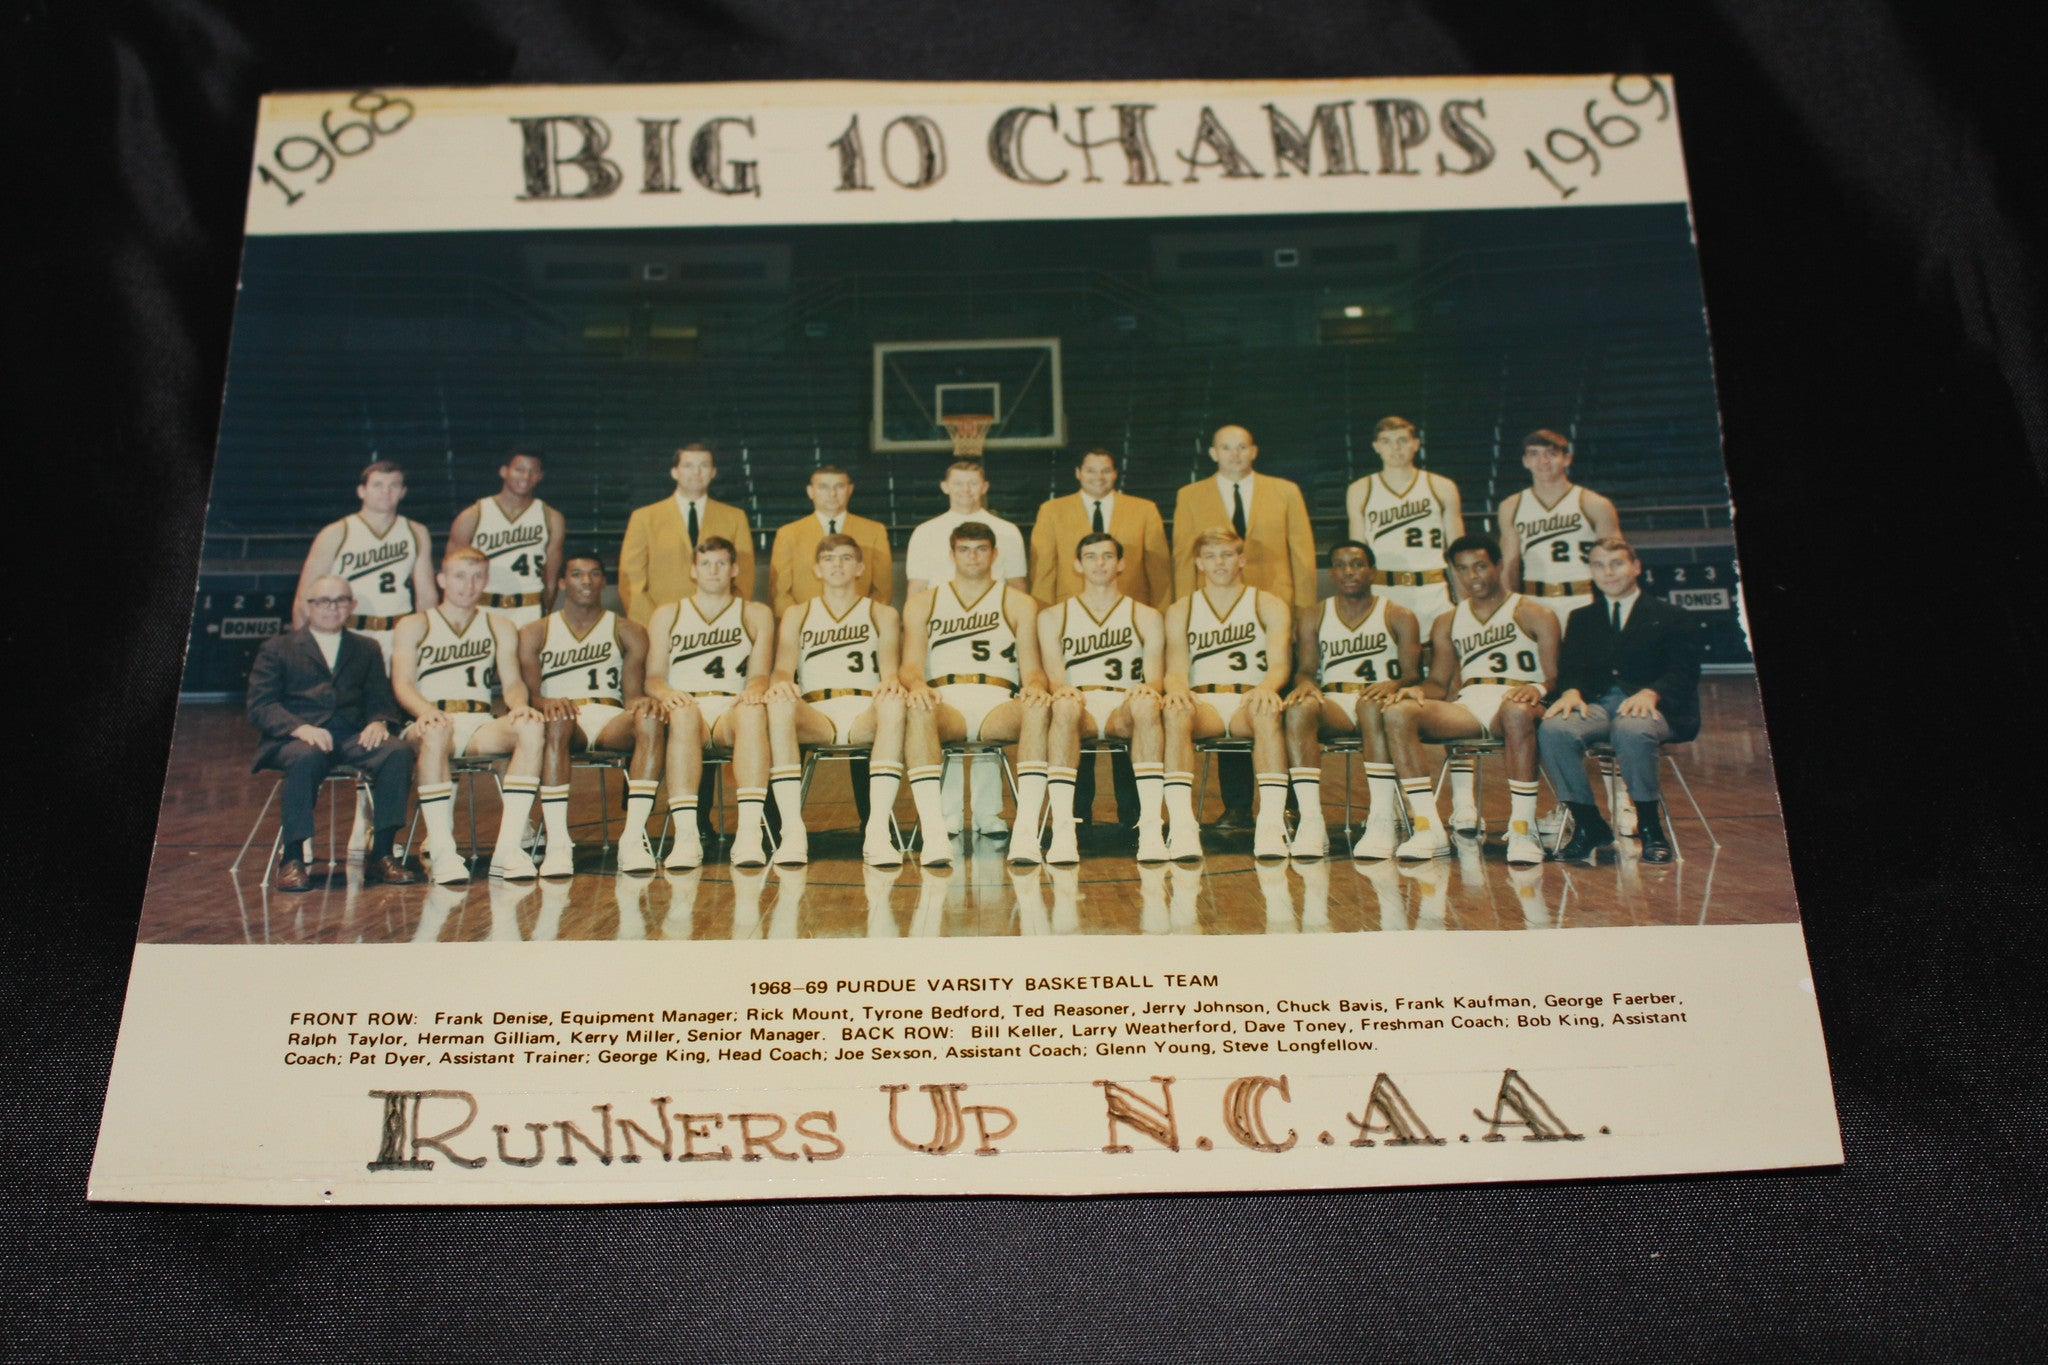 1968-69 Purdue University Basketball NCAA Runners Up Photo - Vintage Indy Sports